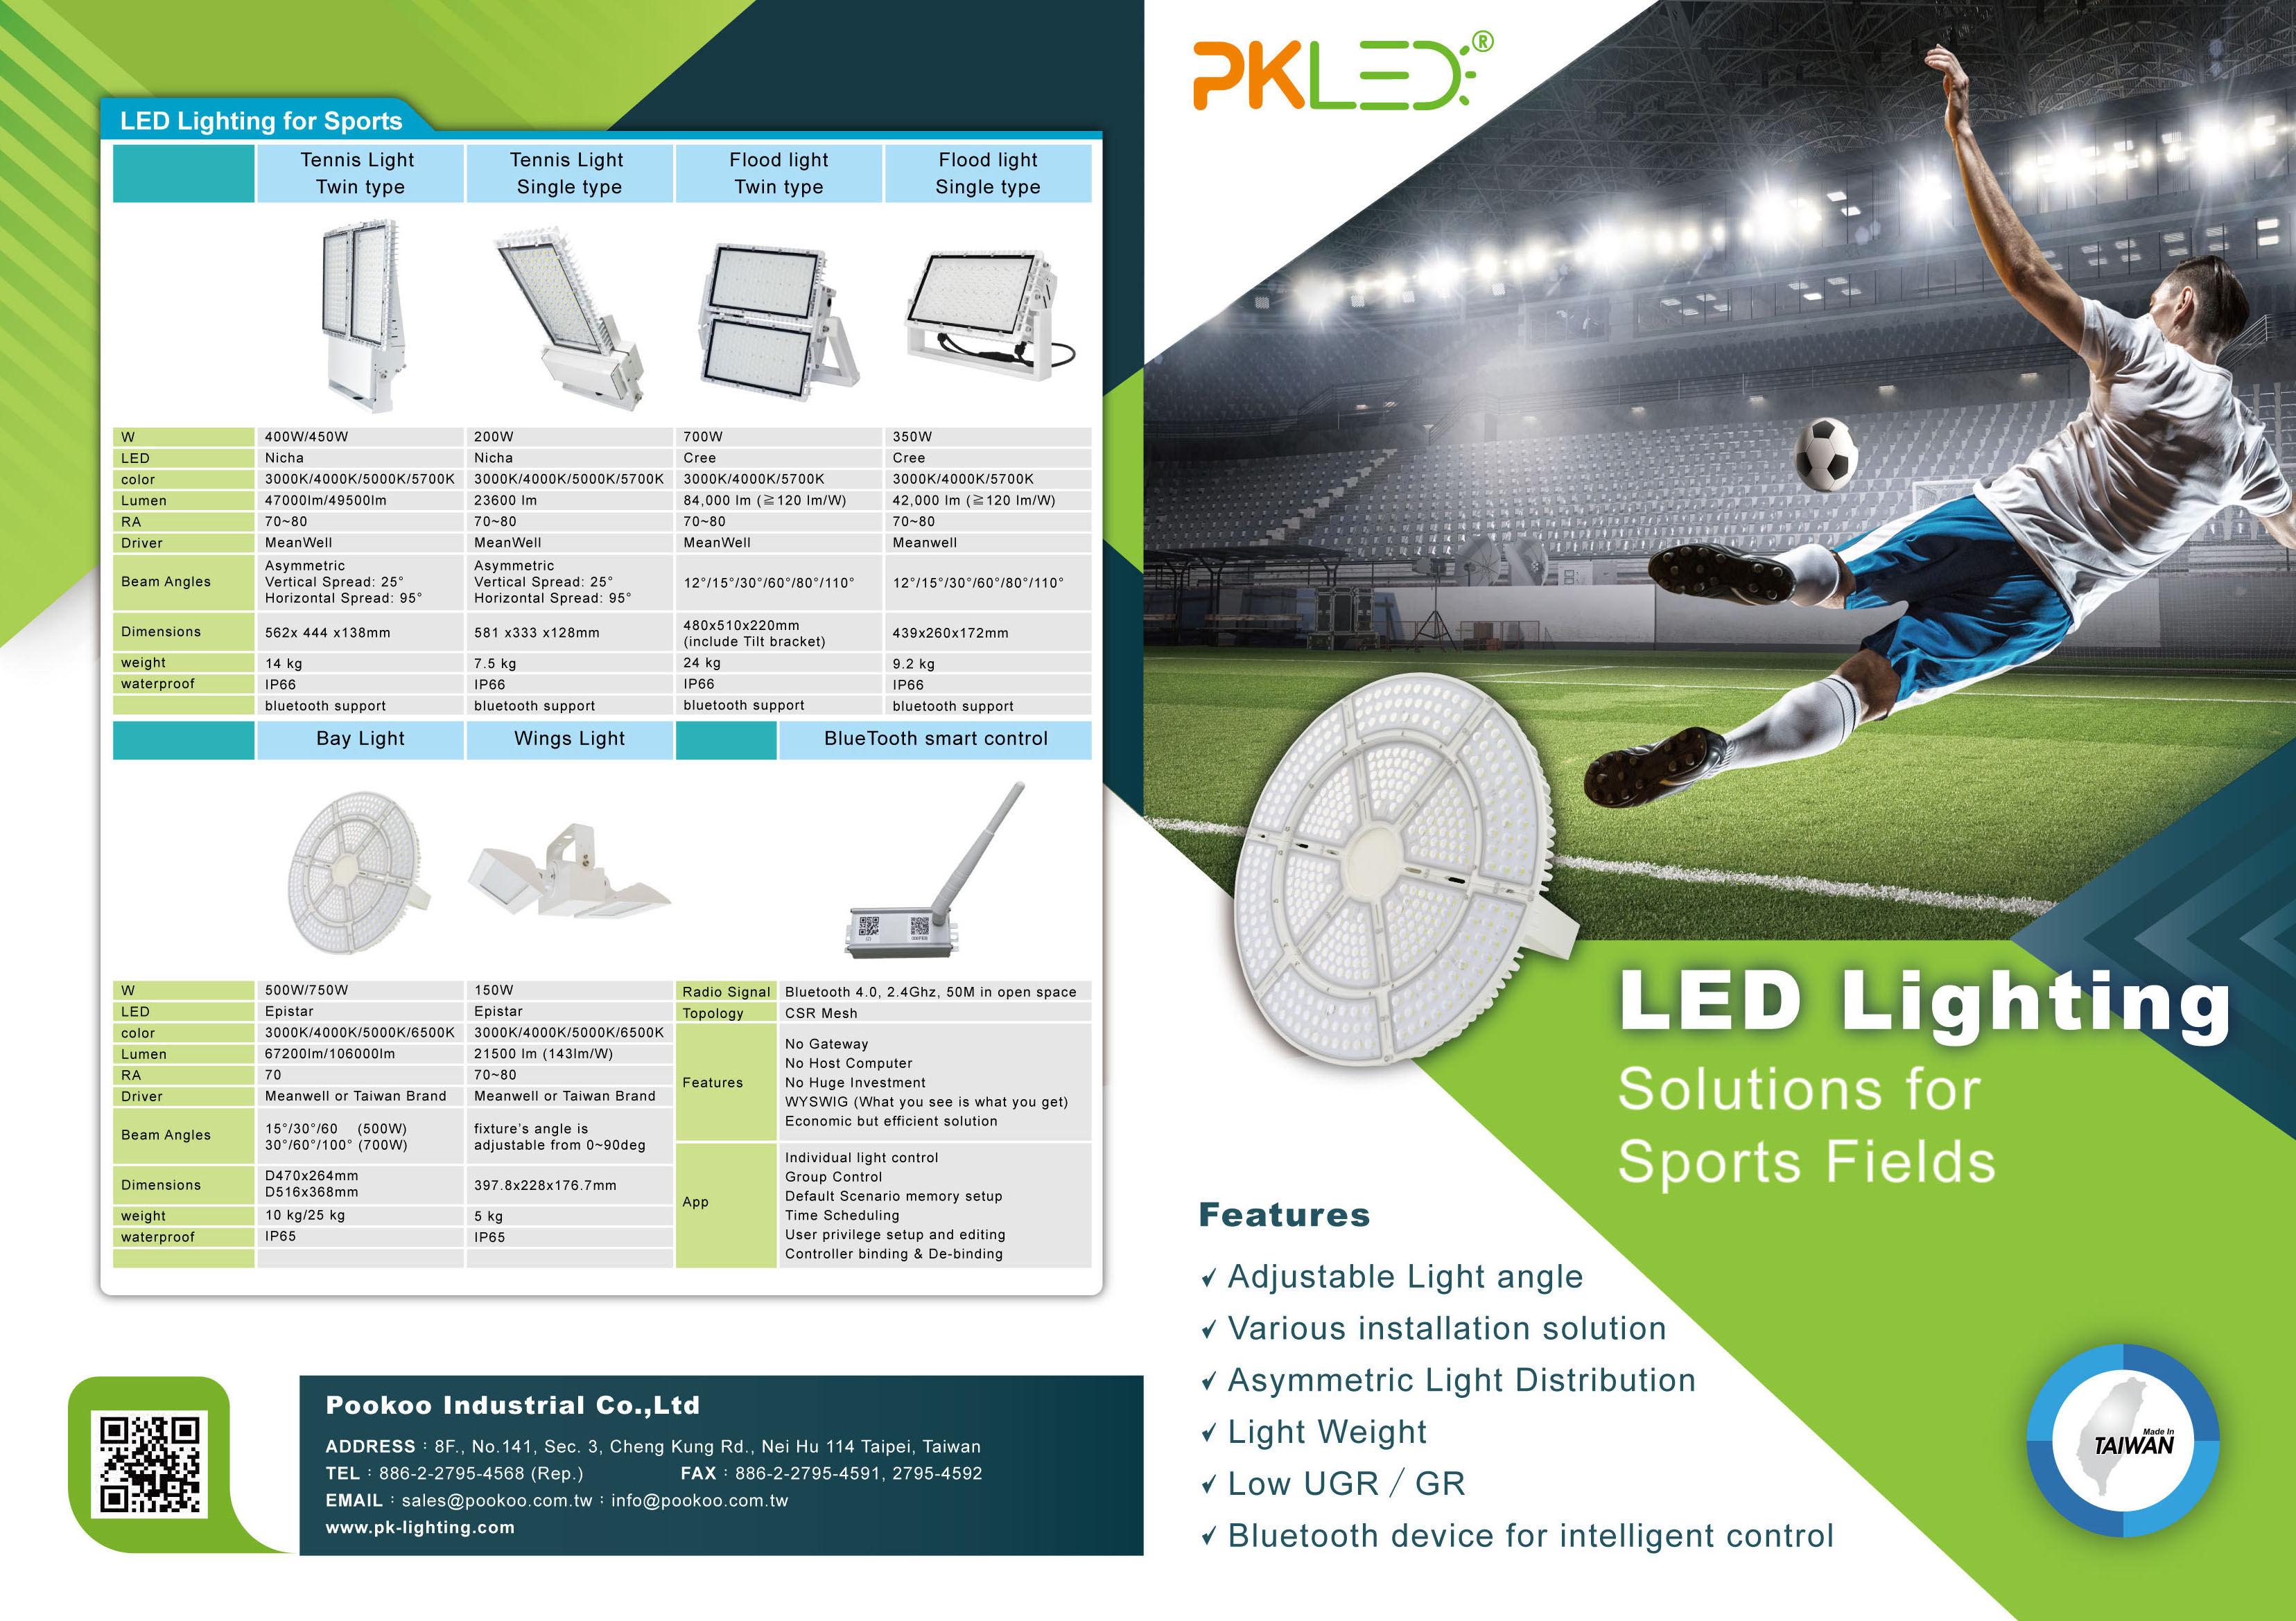 Lamps And Lighting >> Taiwan LED Lighting Manufacturer & Suppliers | Pookoo Industrial & Commercial Light Company